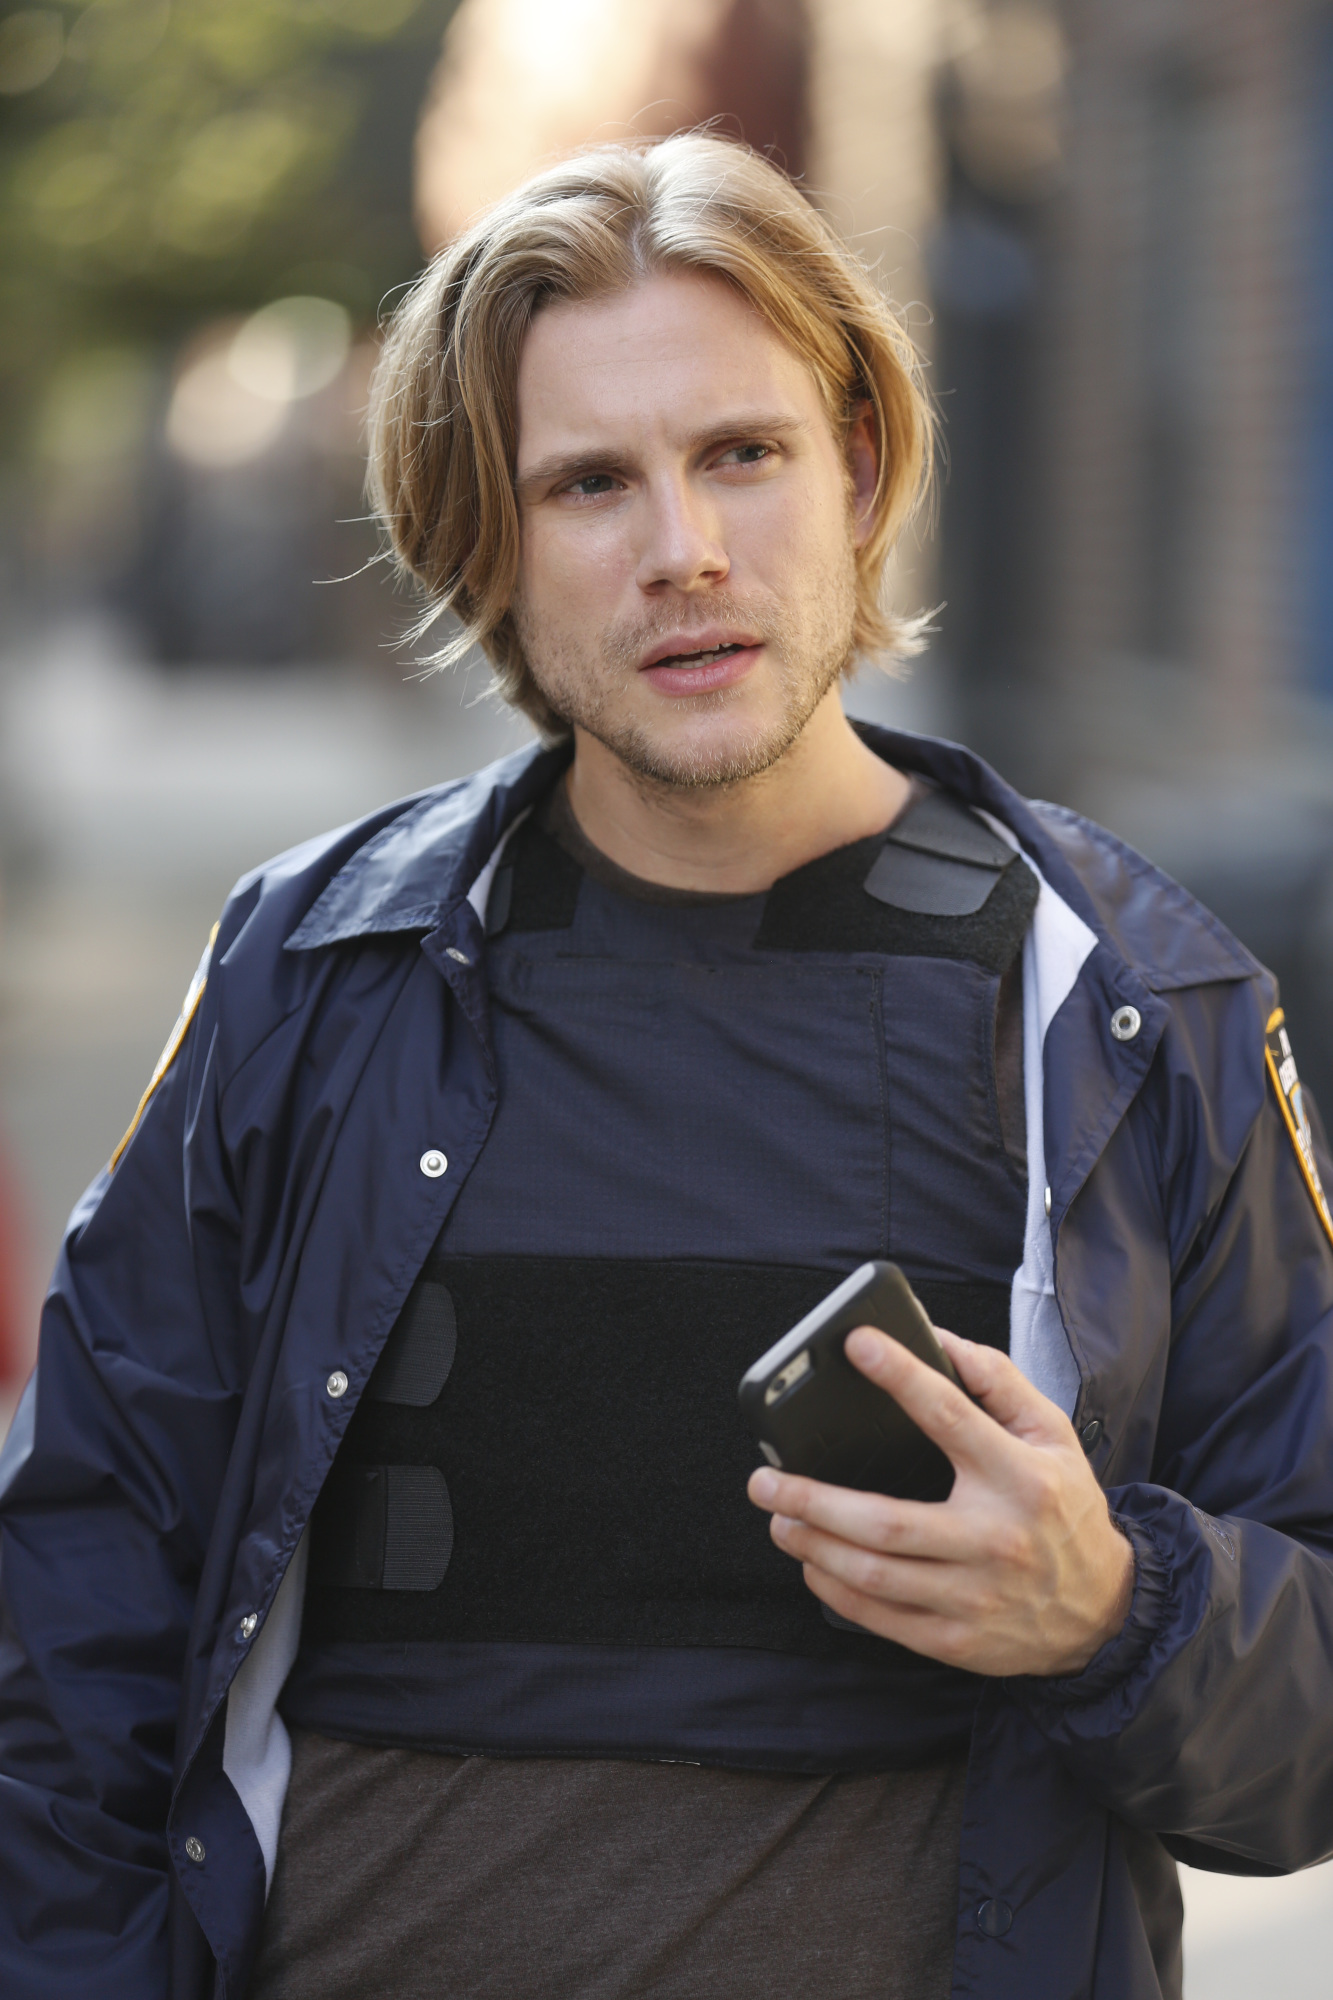 Zachary Booth as Lorenzo Colt